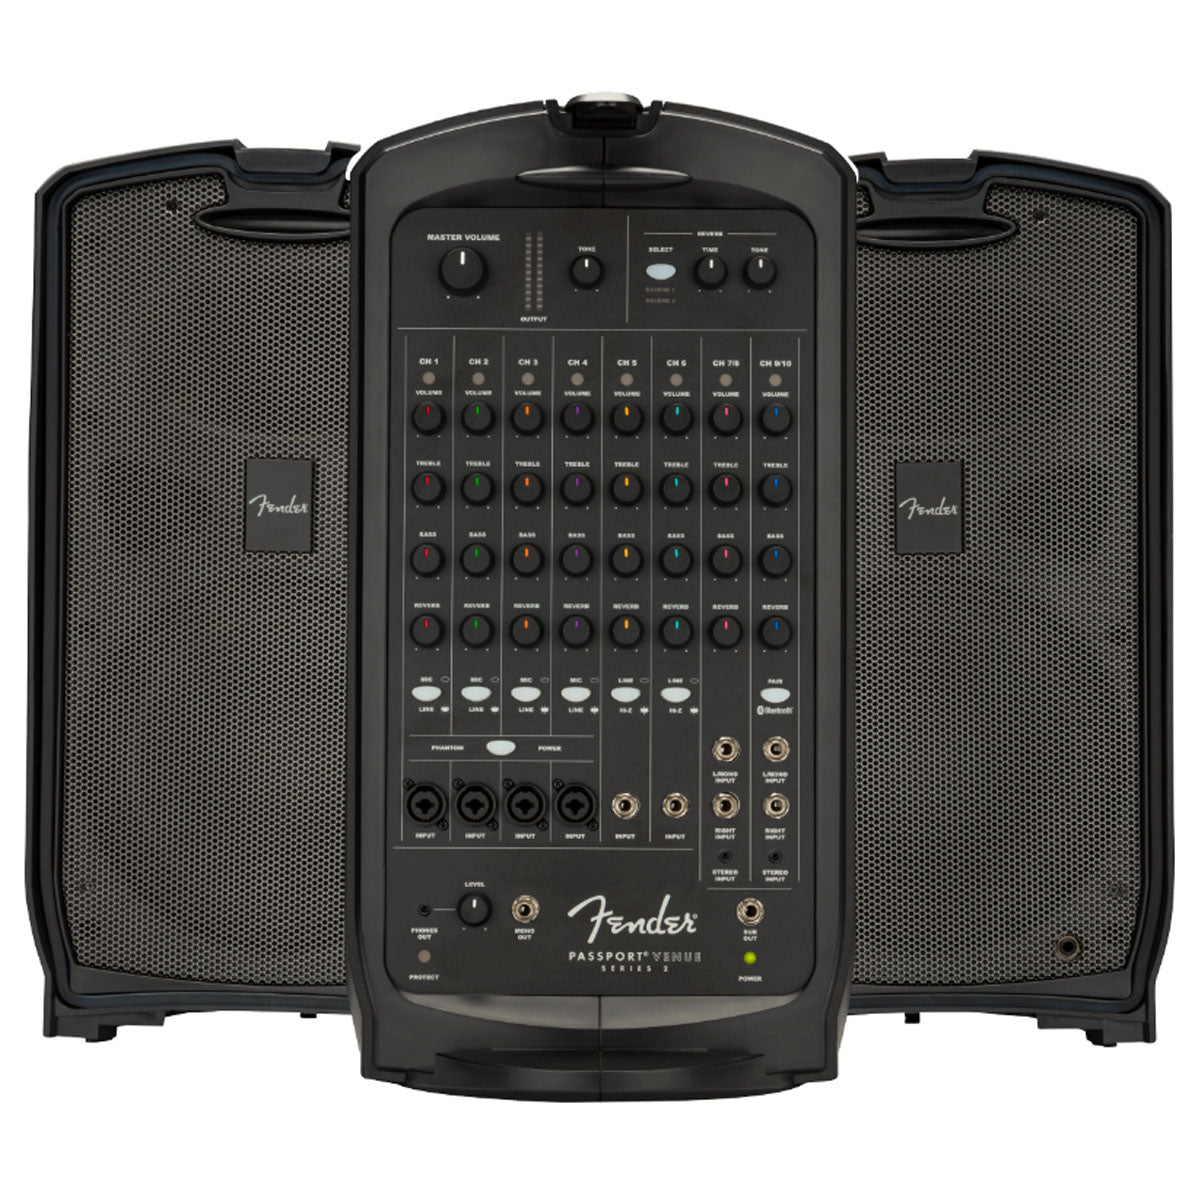 Fender Passport Venue Series 2 PA System 600W w/ Bluetooth - 6944003900